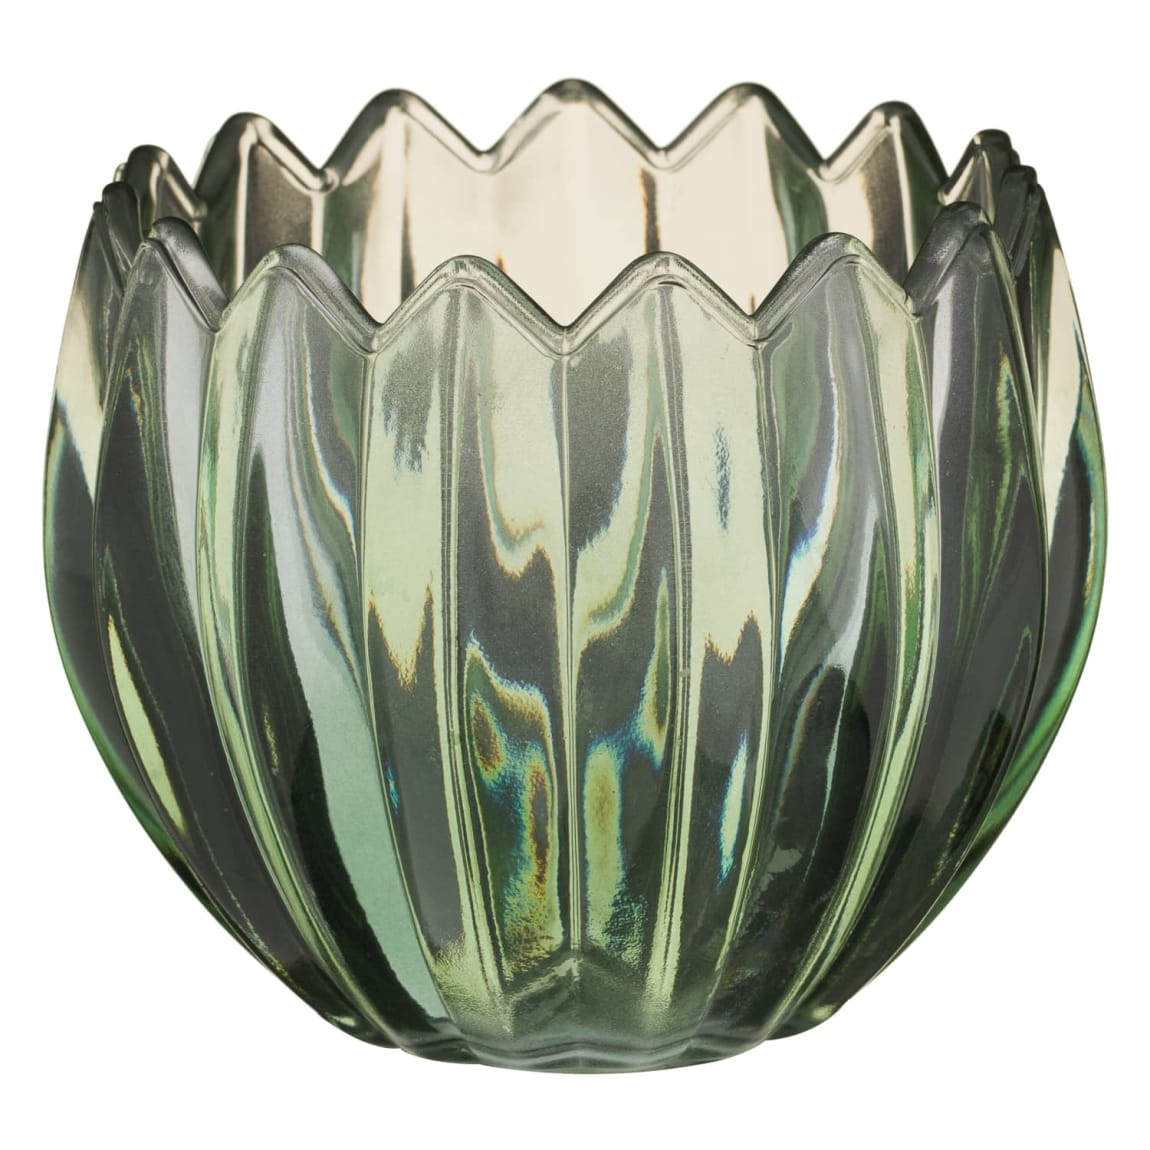 Tealight Candle Holder - Green